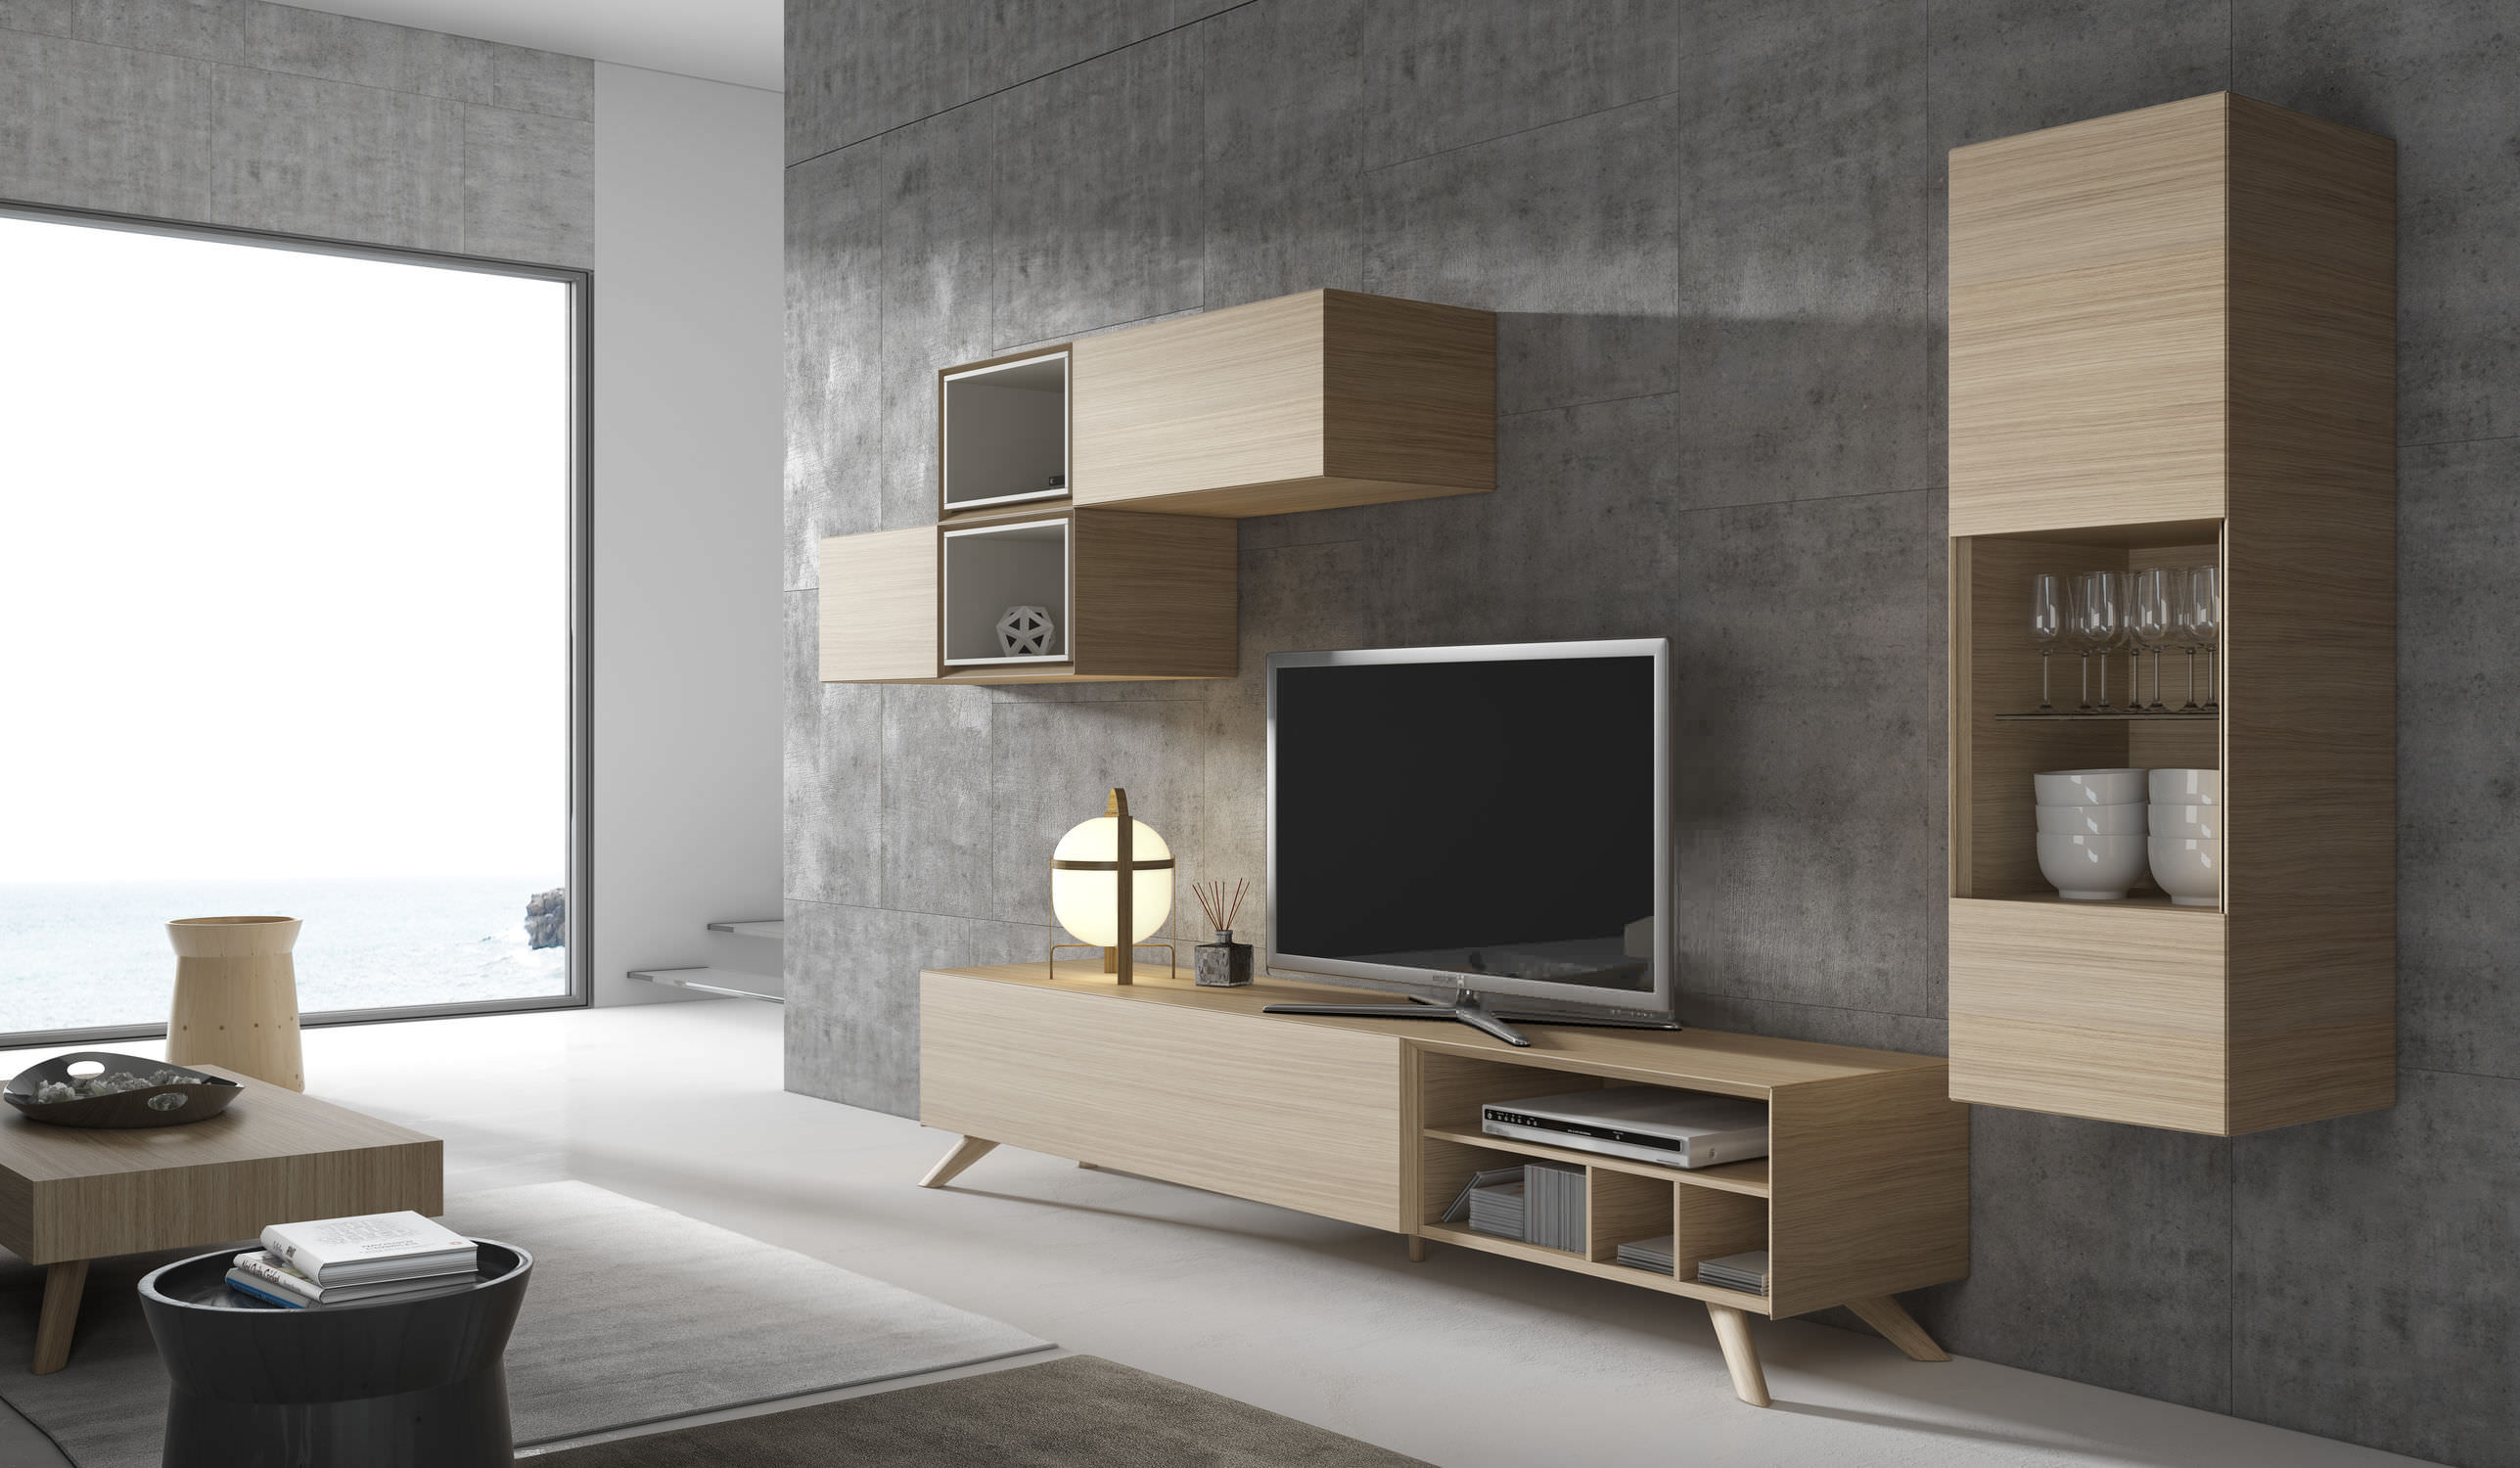 Ensemble Mural Tv Contemporain En Bois Ginza 309 A Brito # Meuble Modulable Tv